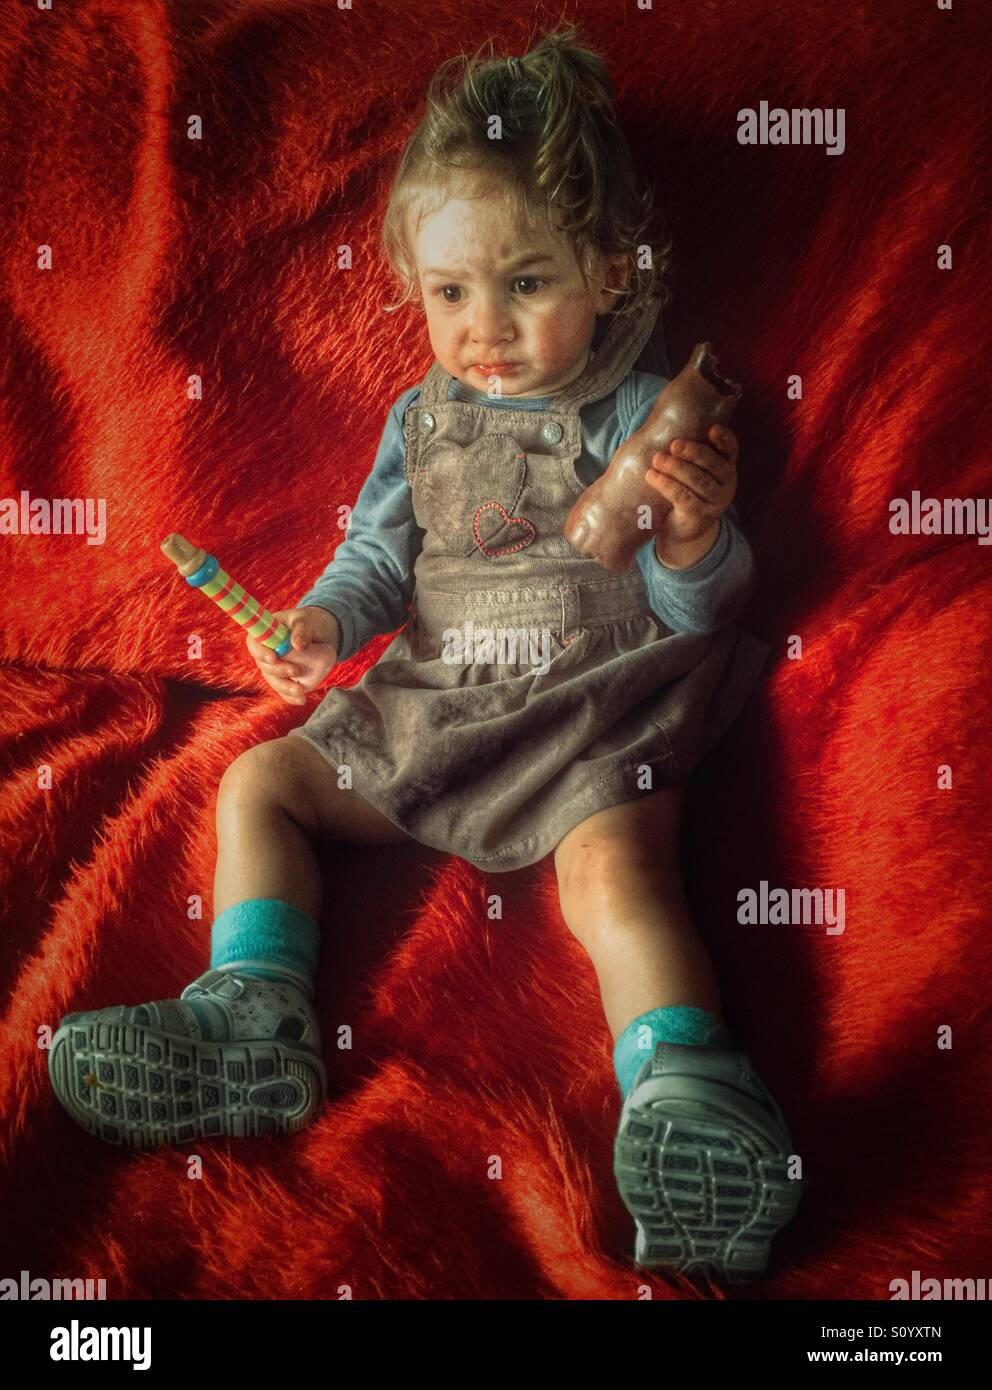 18 months baby girl sitting on sofa and eating chocolate - Stock Image